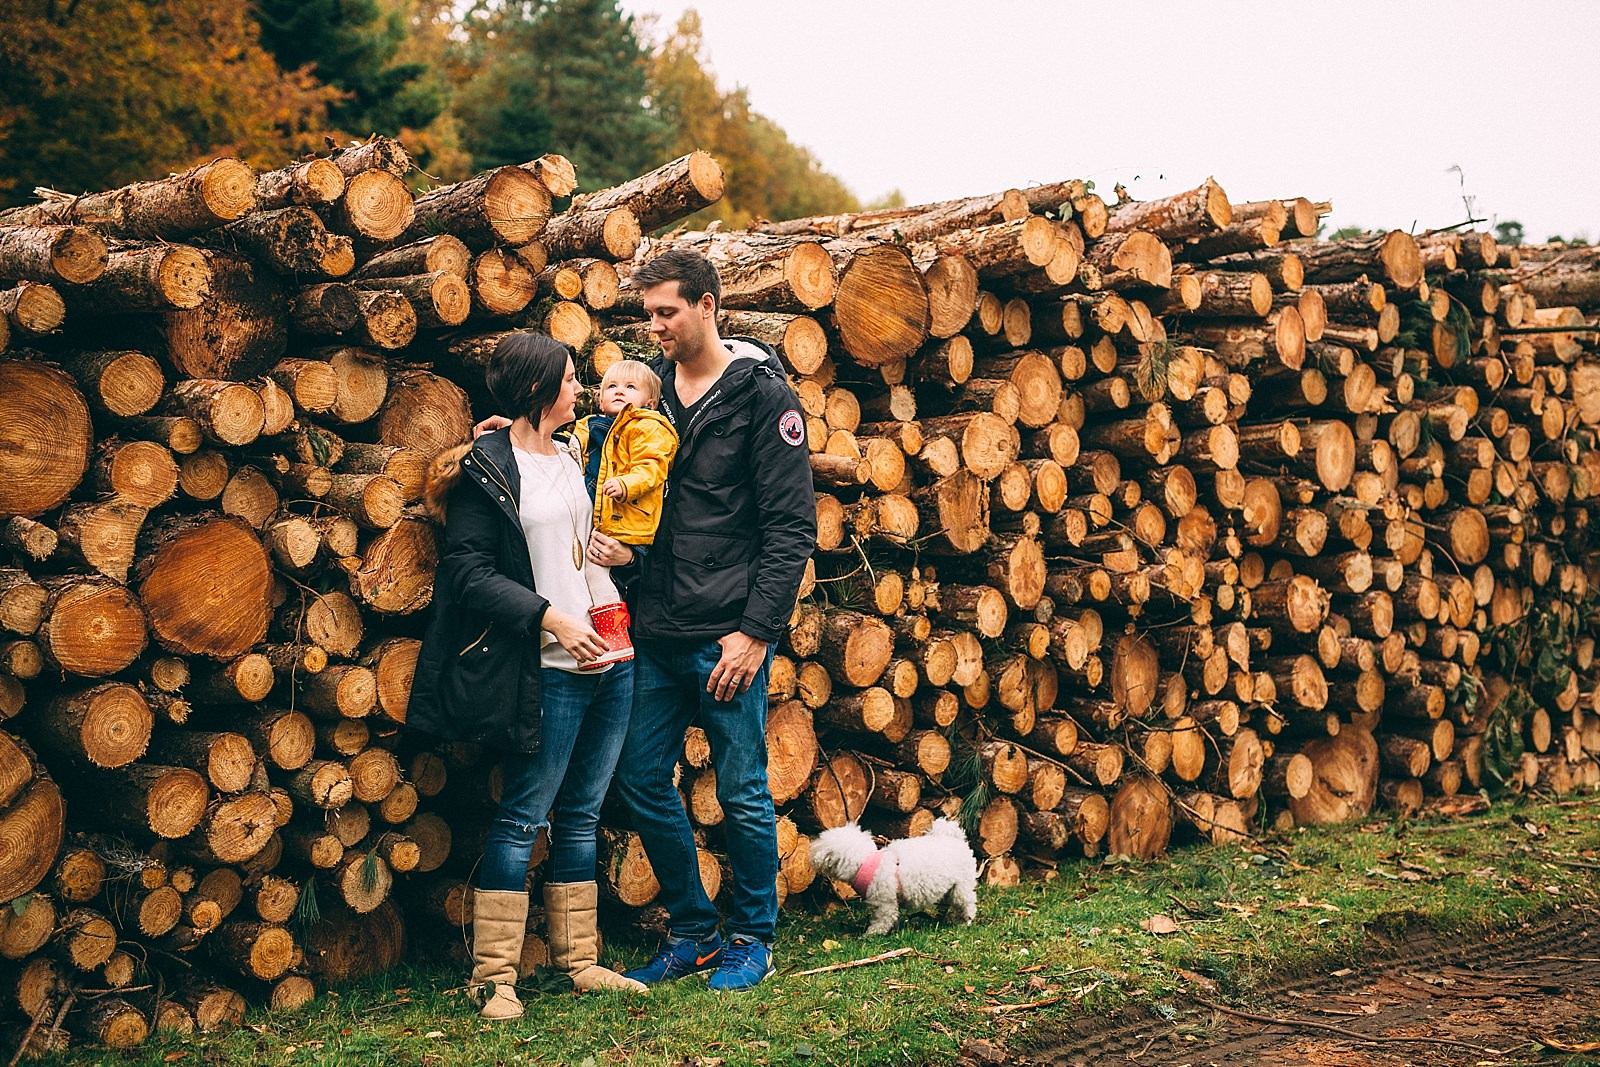 mum and dad holding daughter and standing by wooden logs